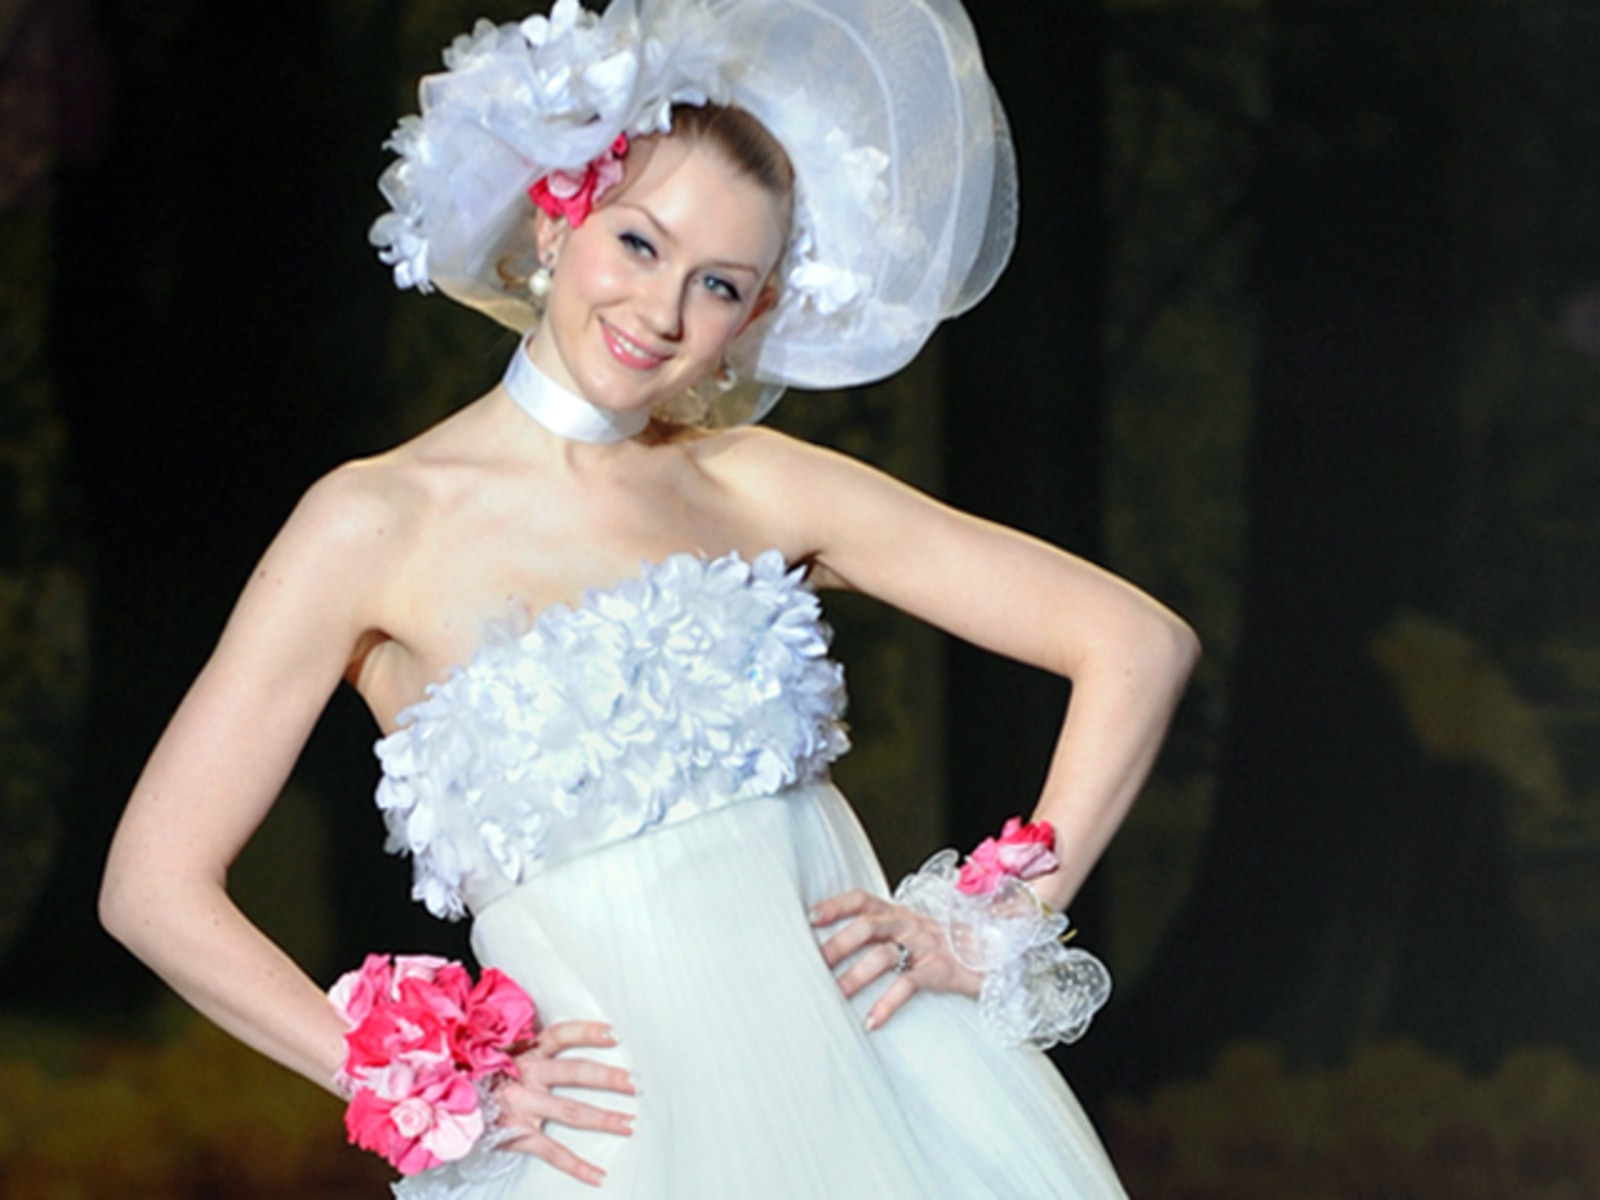 A model shows off a wedding dress by Jap